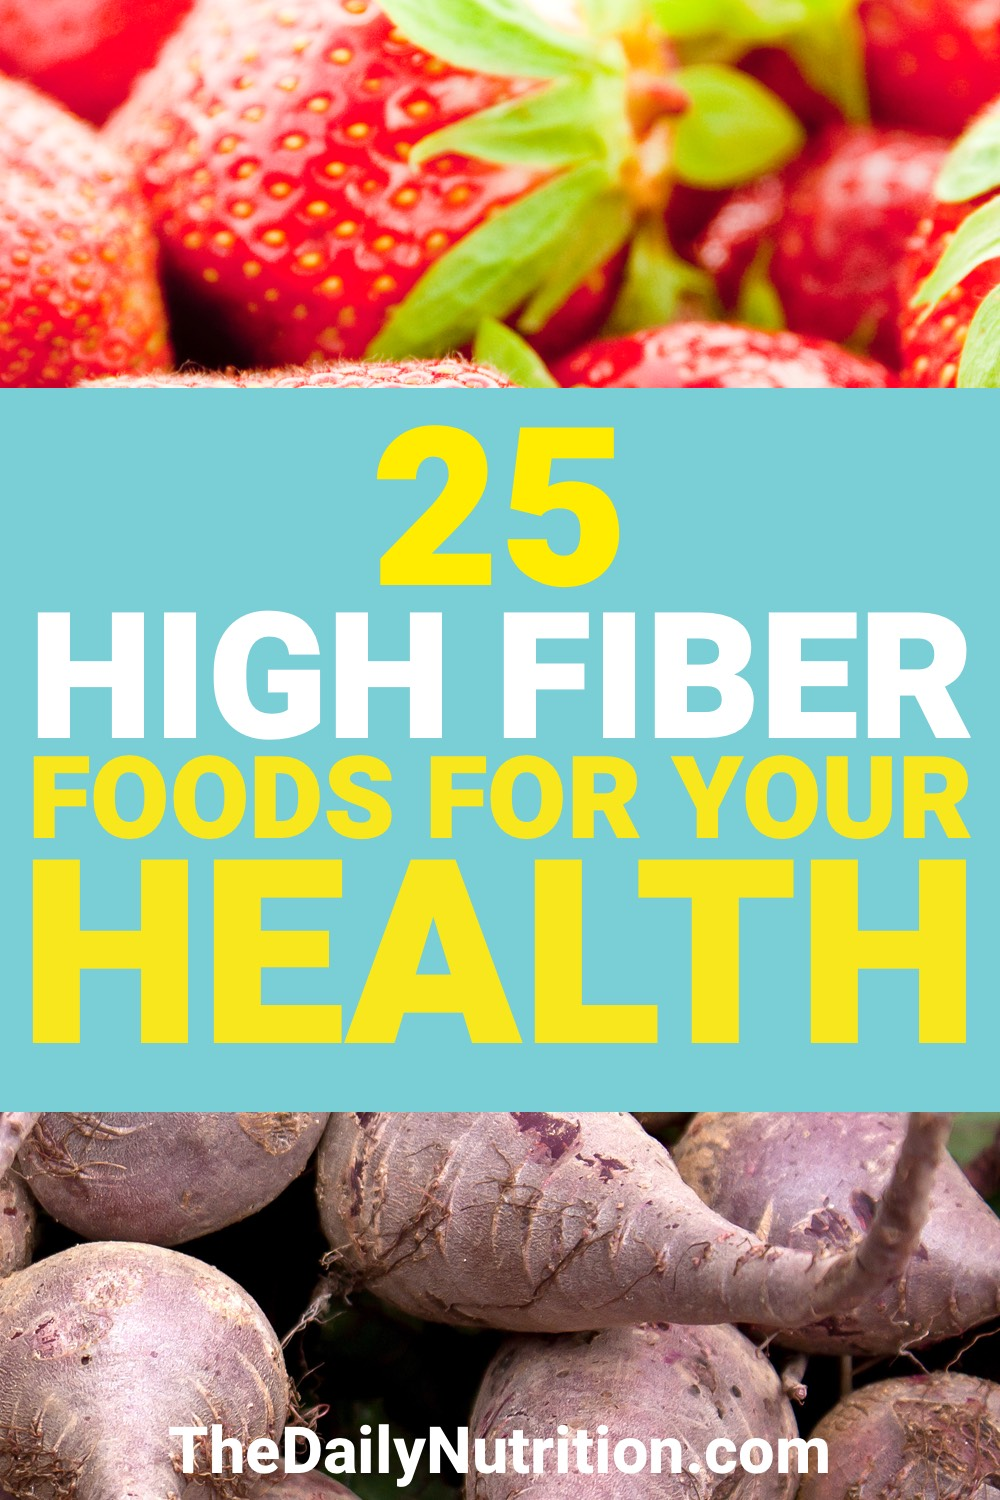 Finding high fiber foods isn't always easy. Here are 25 high fiber foods that you need.